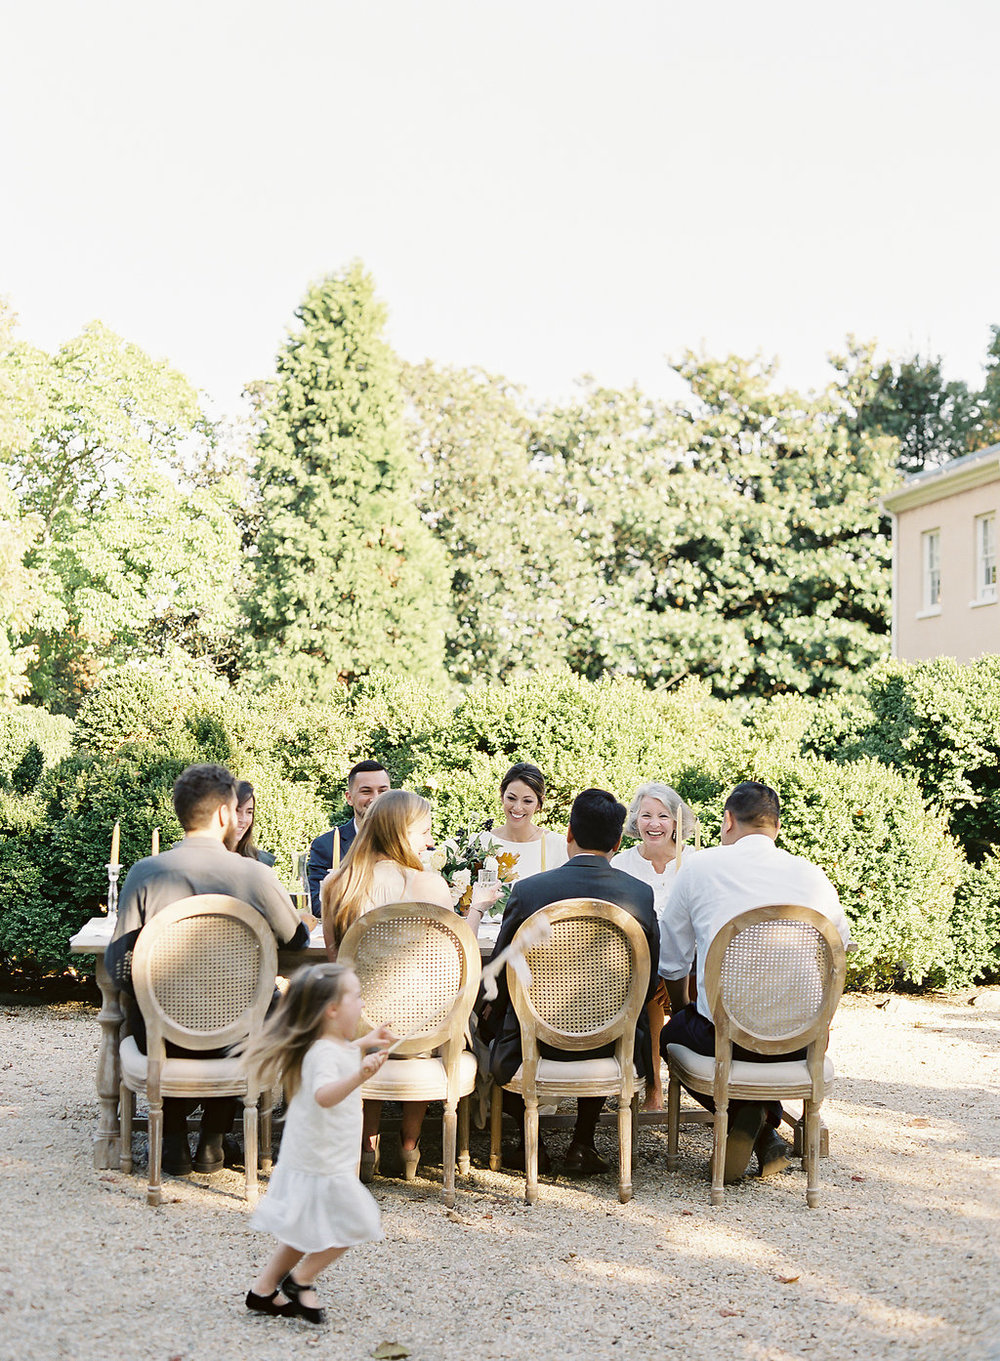 Fine art film photographer photography wedding engagement washington DC georgetown virginia modern bride destination inspiration tuscan inspired minimal classic timeless california ny dining al fresco